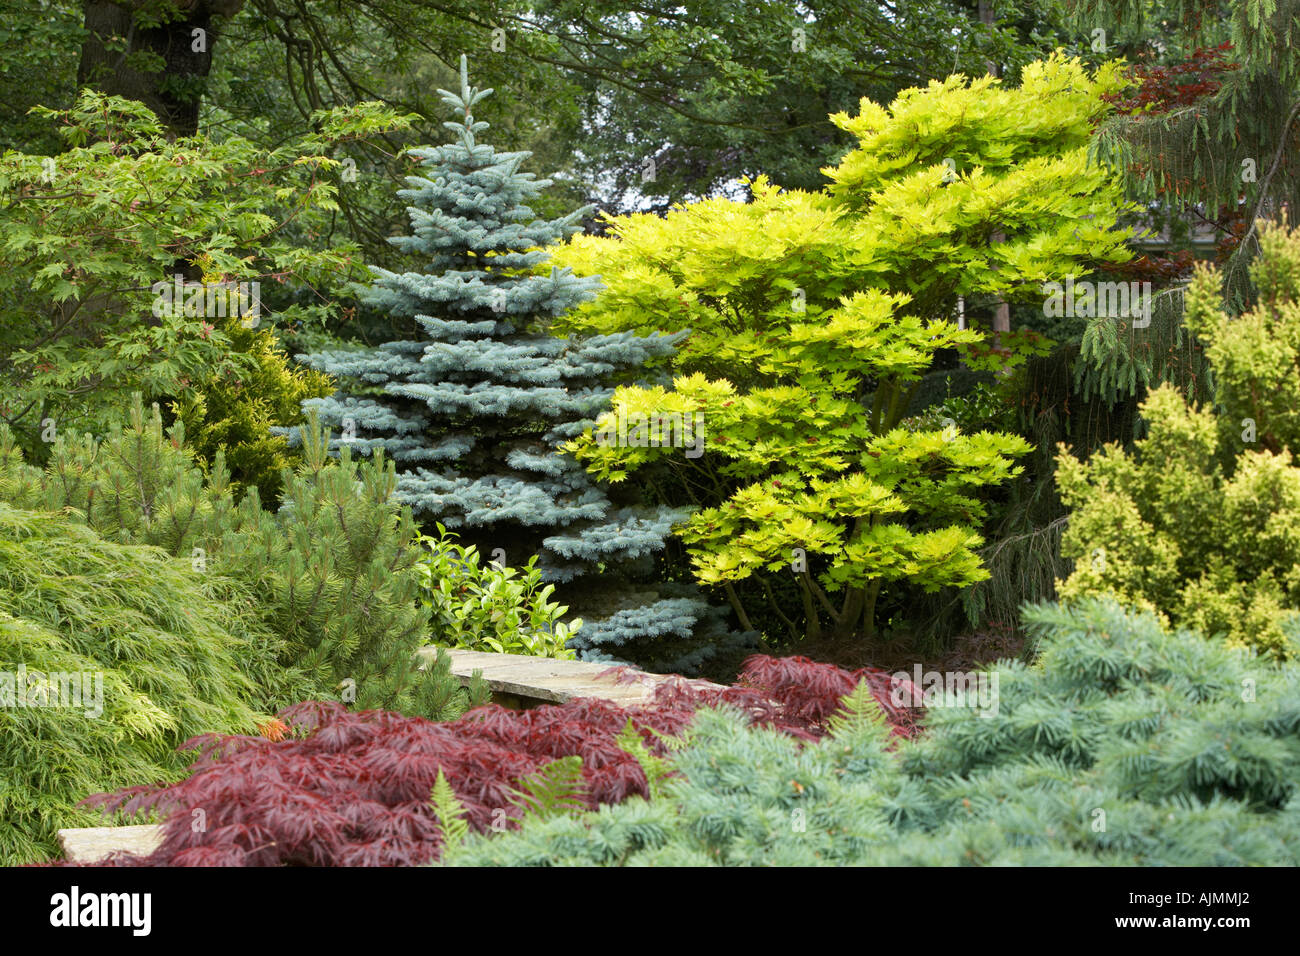 Conifers in the garden stock photo royalty free image for Garden trees scotland